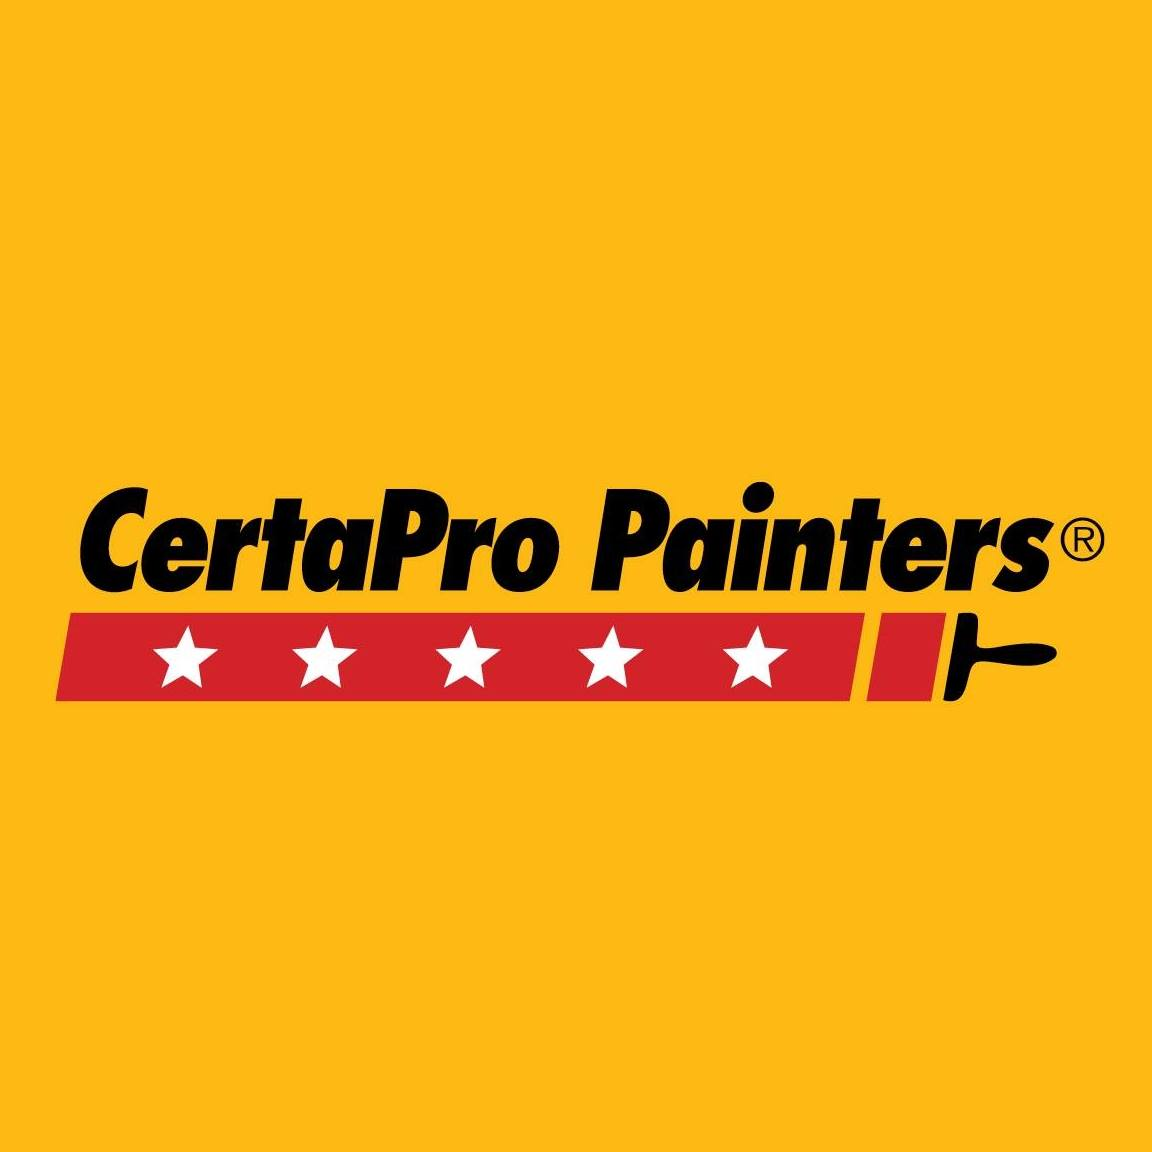 CertaPro Painters of the Garden State